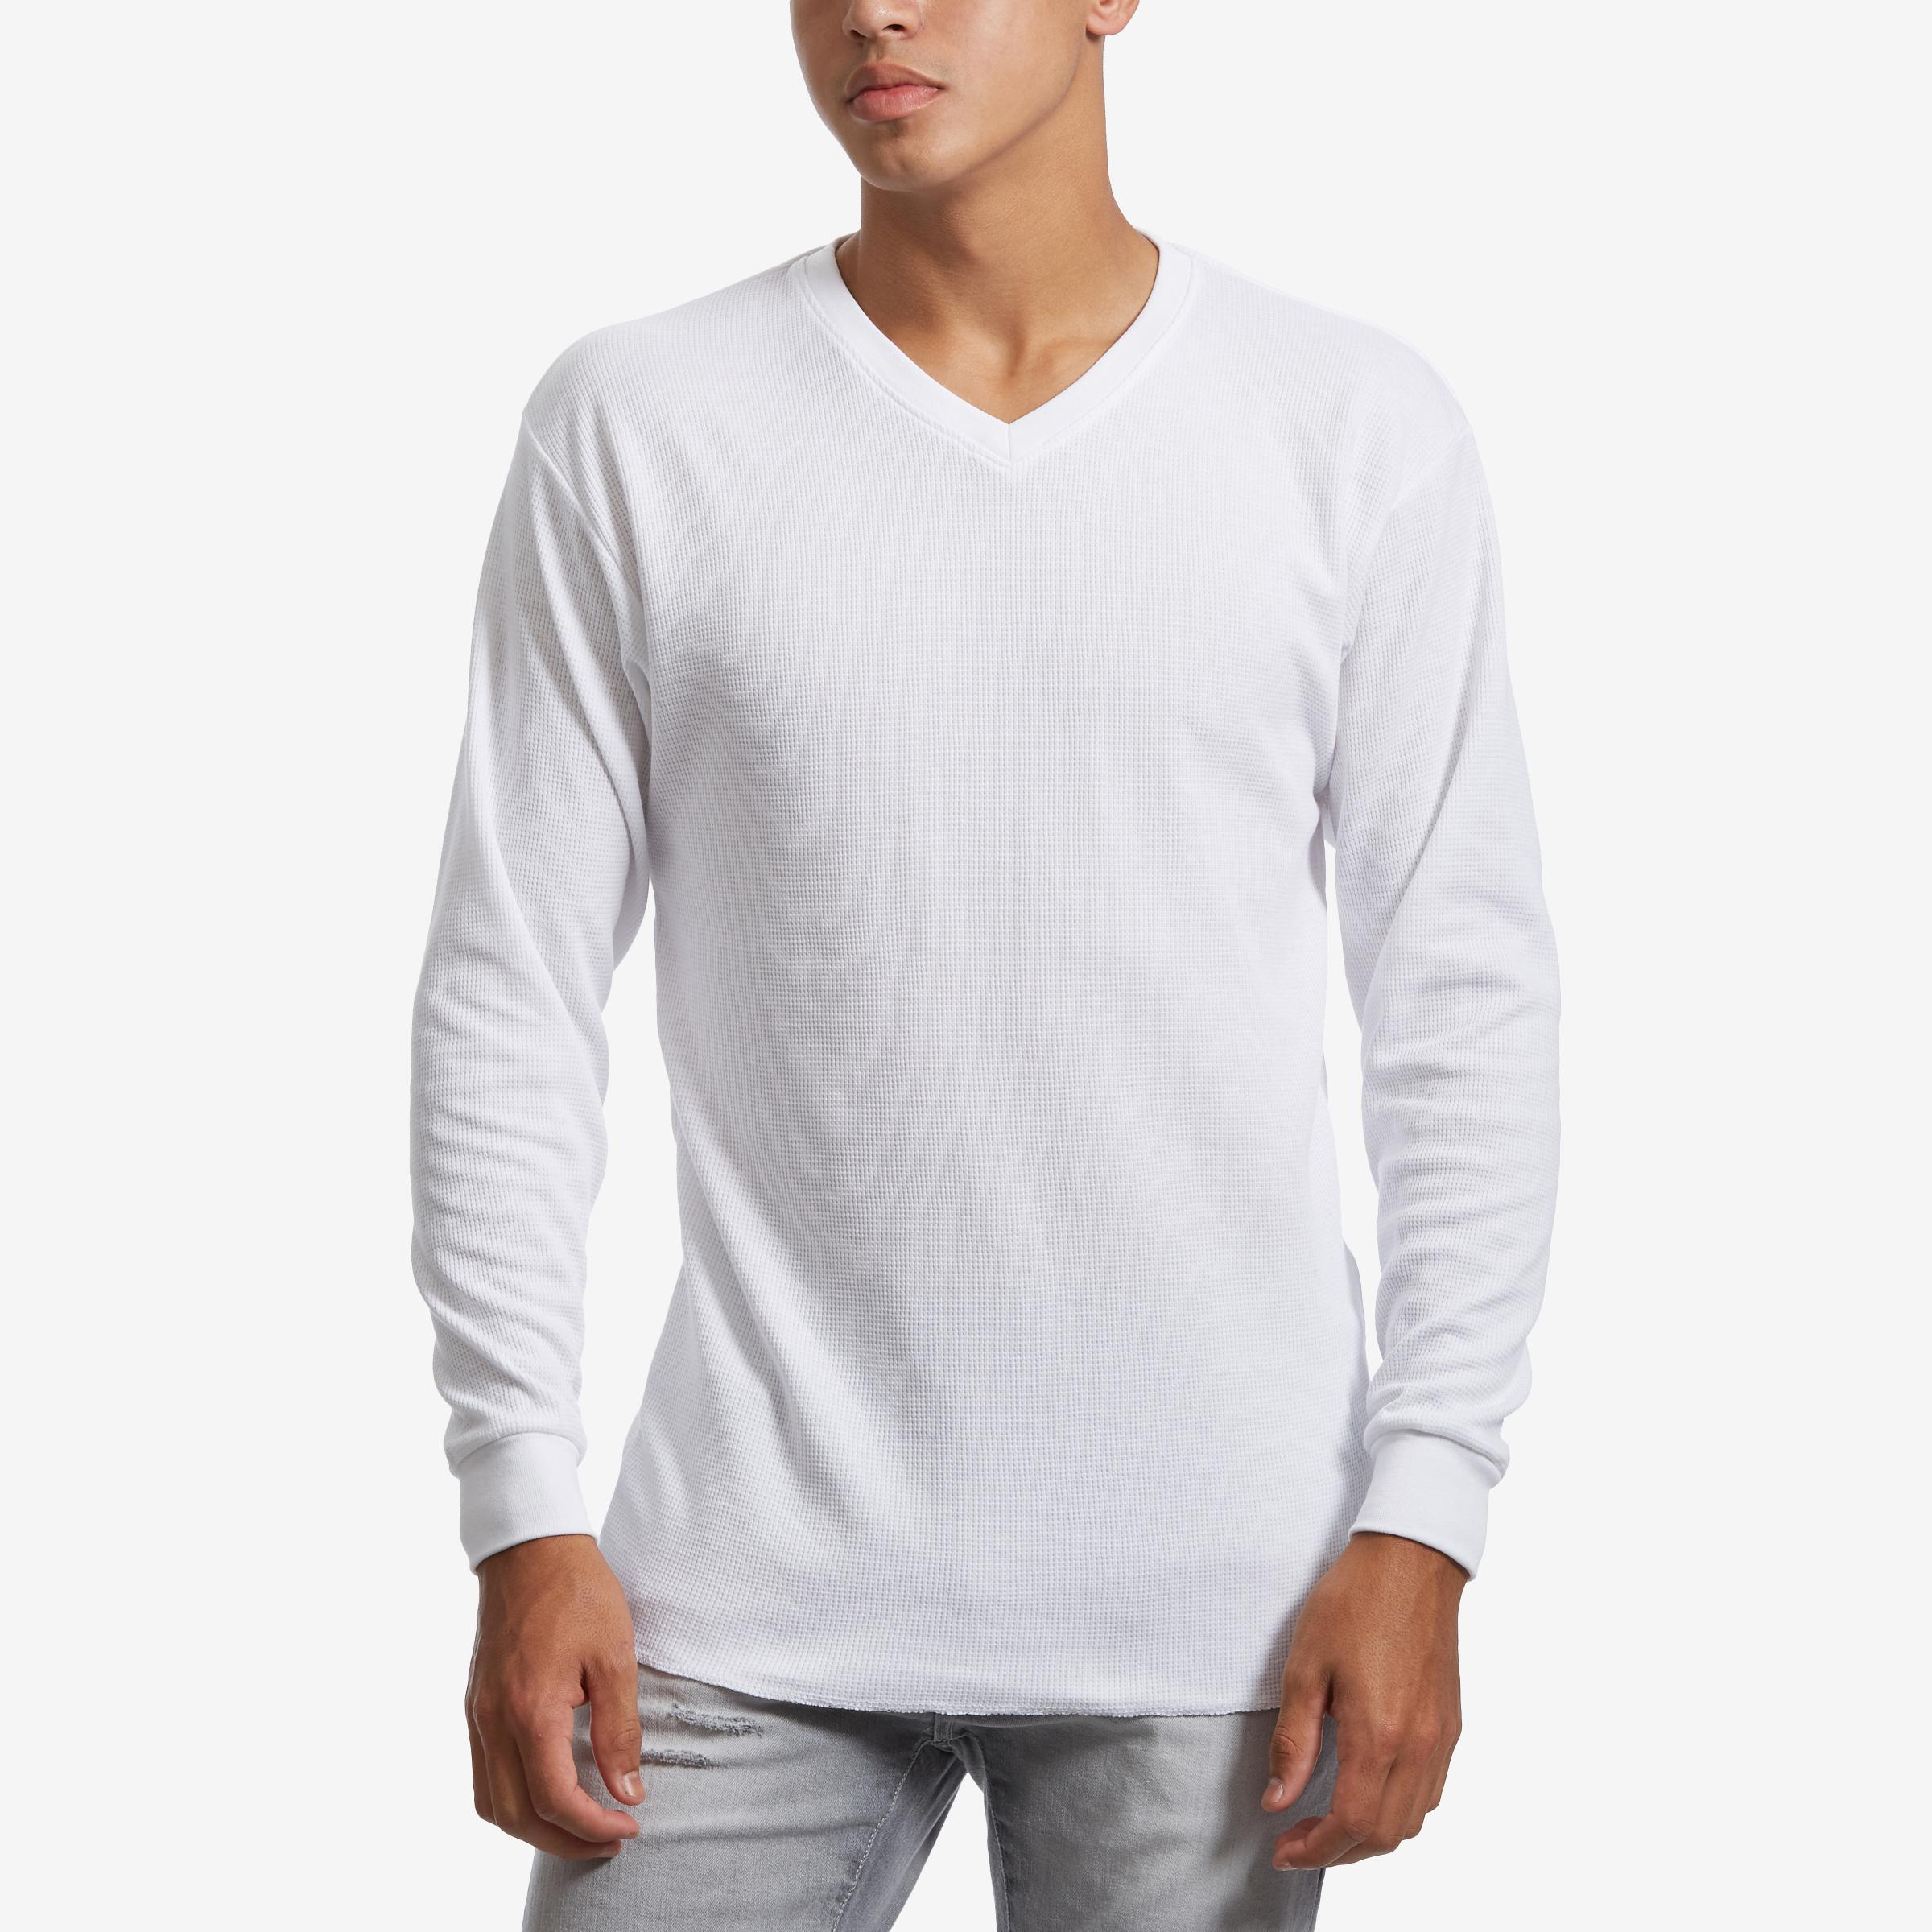 Men's V- Neck Thermal Shirt